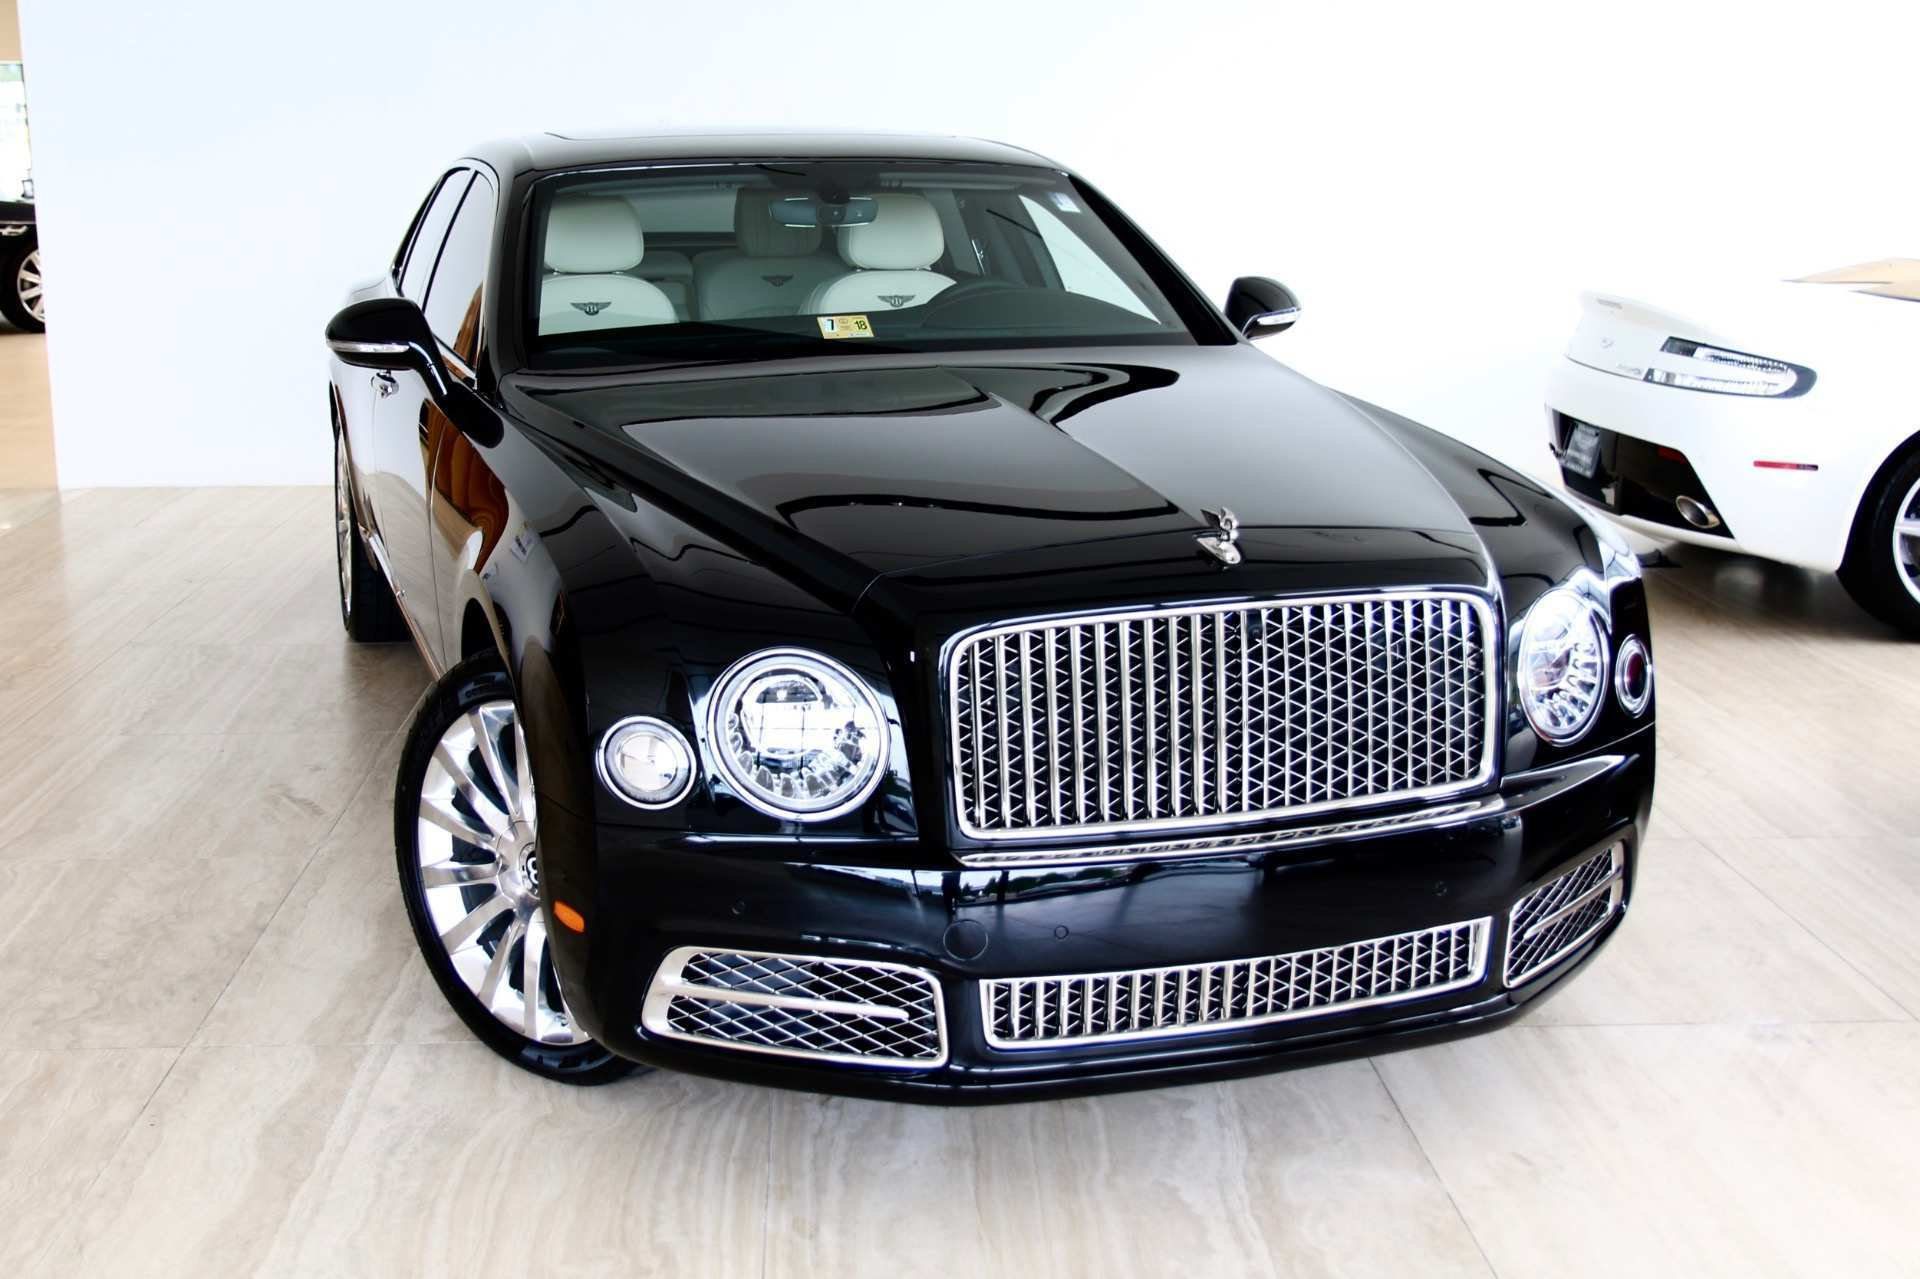 52 The 2019 Bentley Mulsanne For Sale Model by 2019 Bentley Mulsanne For Sale